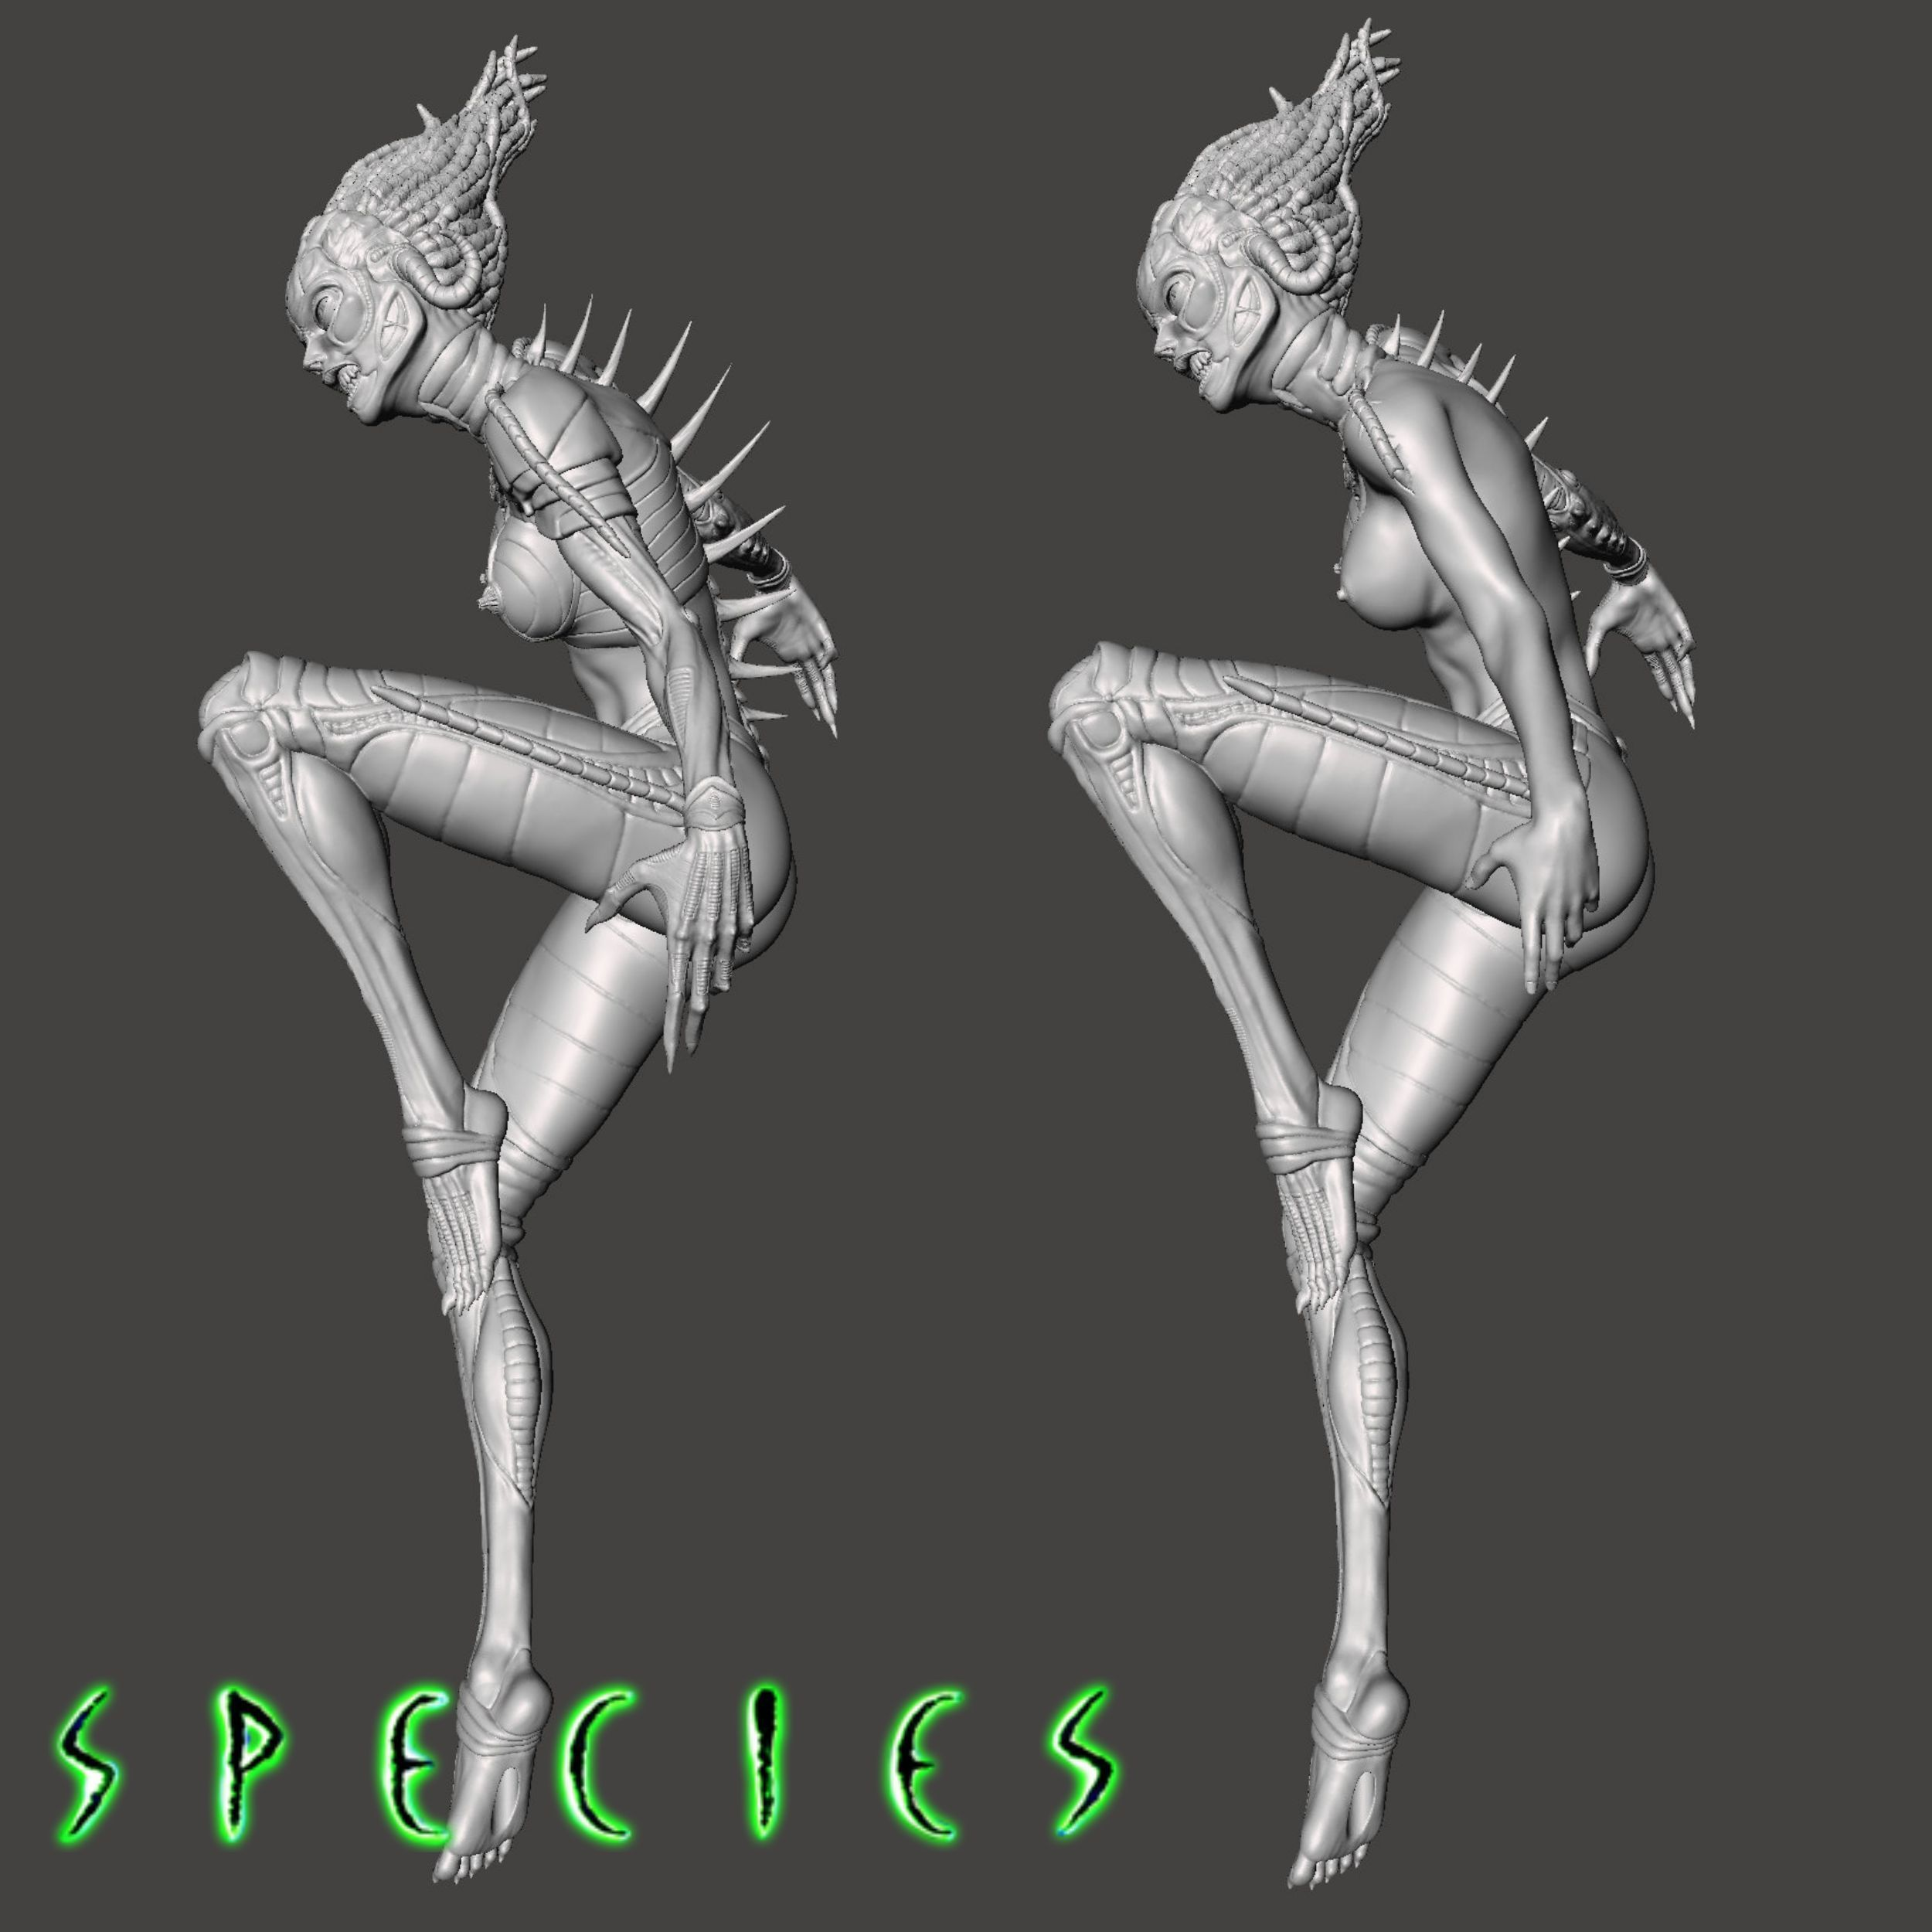 Image13.jpg Download STL file Alien Girl - SPECIES Part 1- by SPARX • 3D printable object, wikd2011